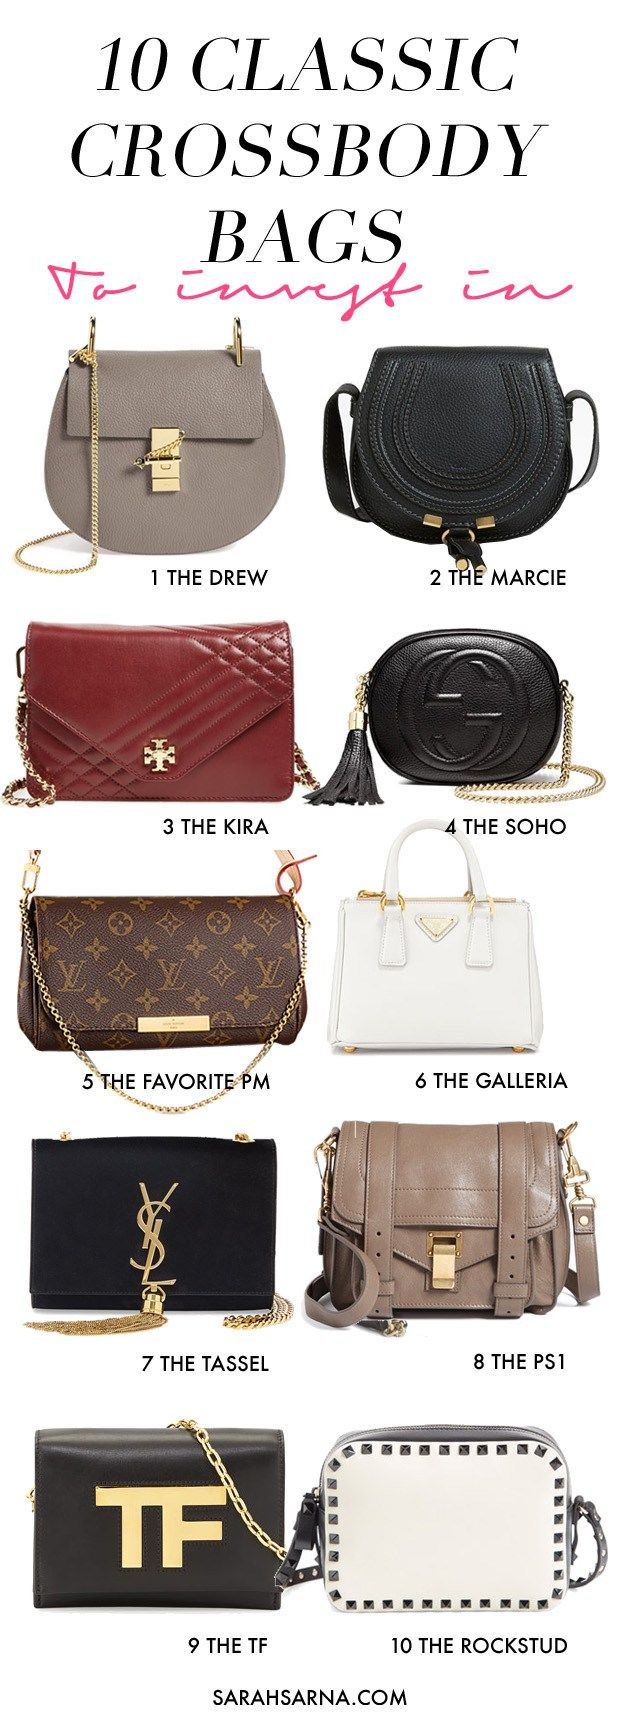 10 Classic Crossbody Bags To Invest In Louis Vuitton Bag Prada